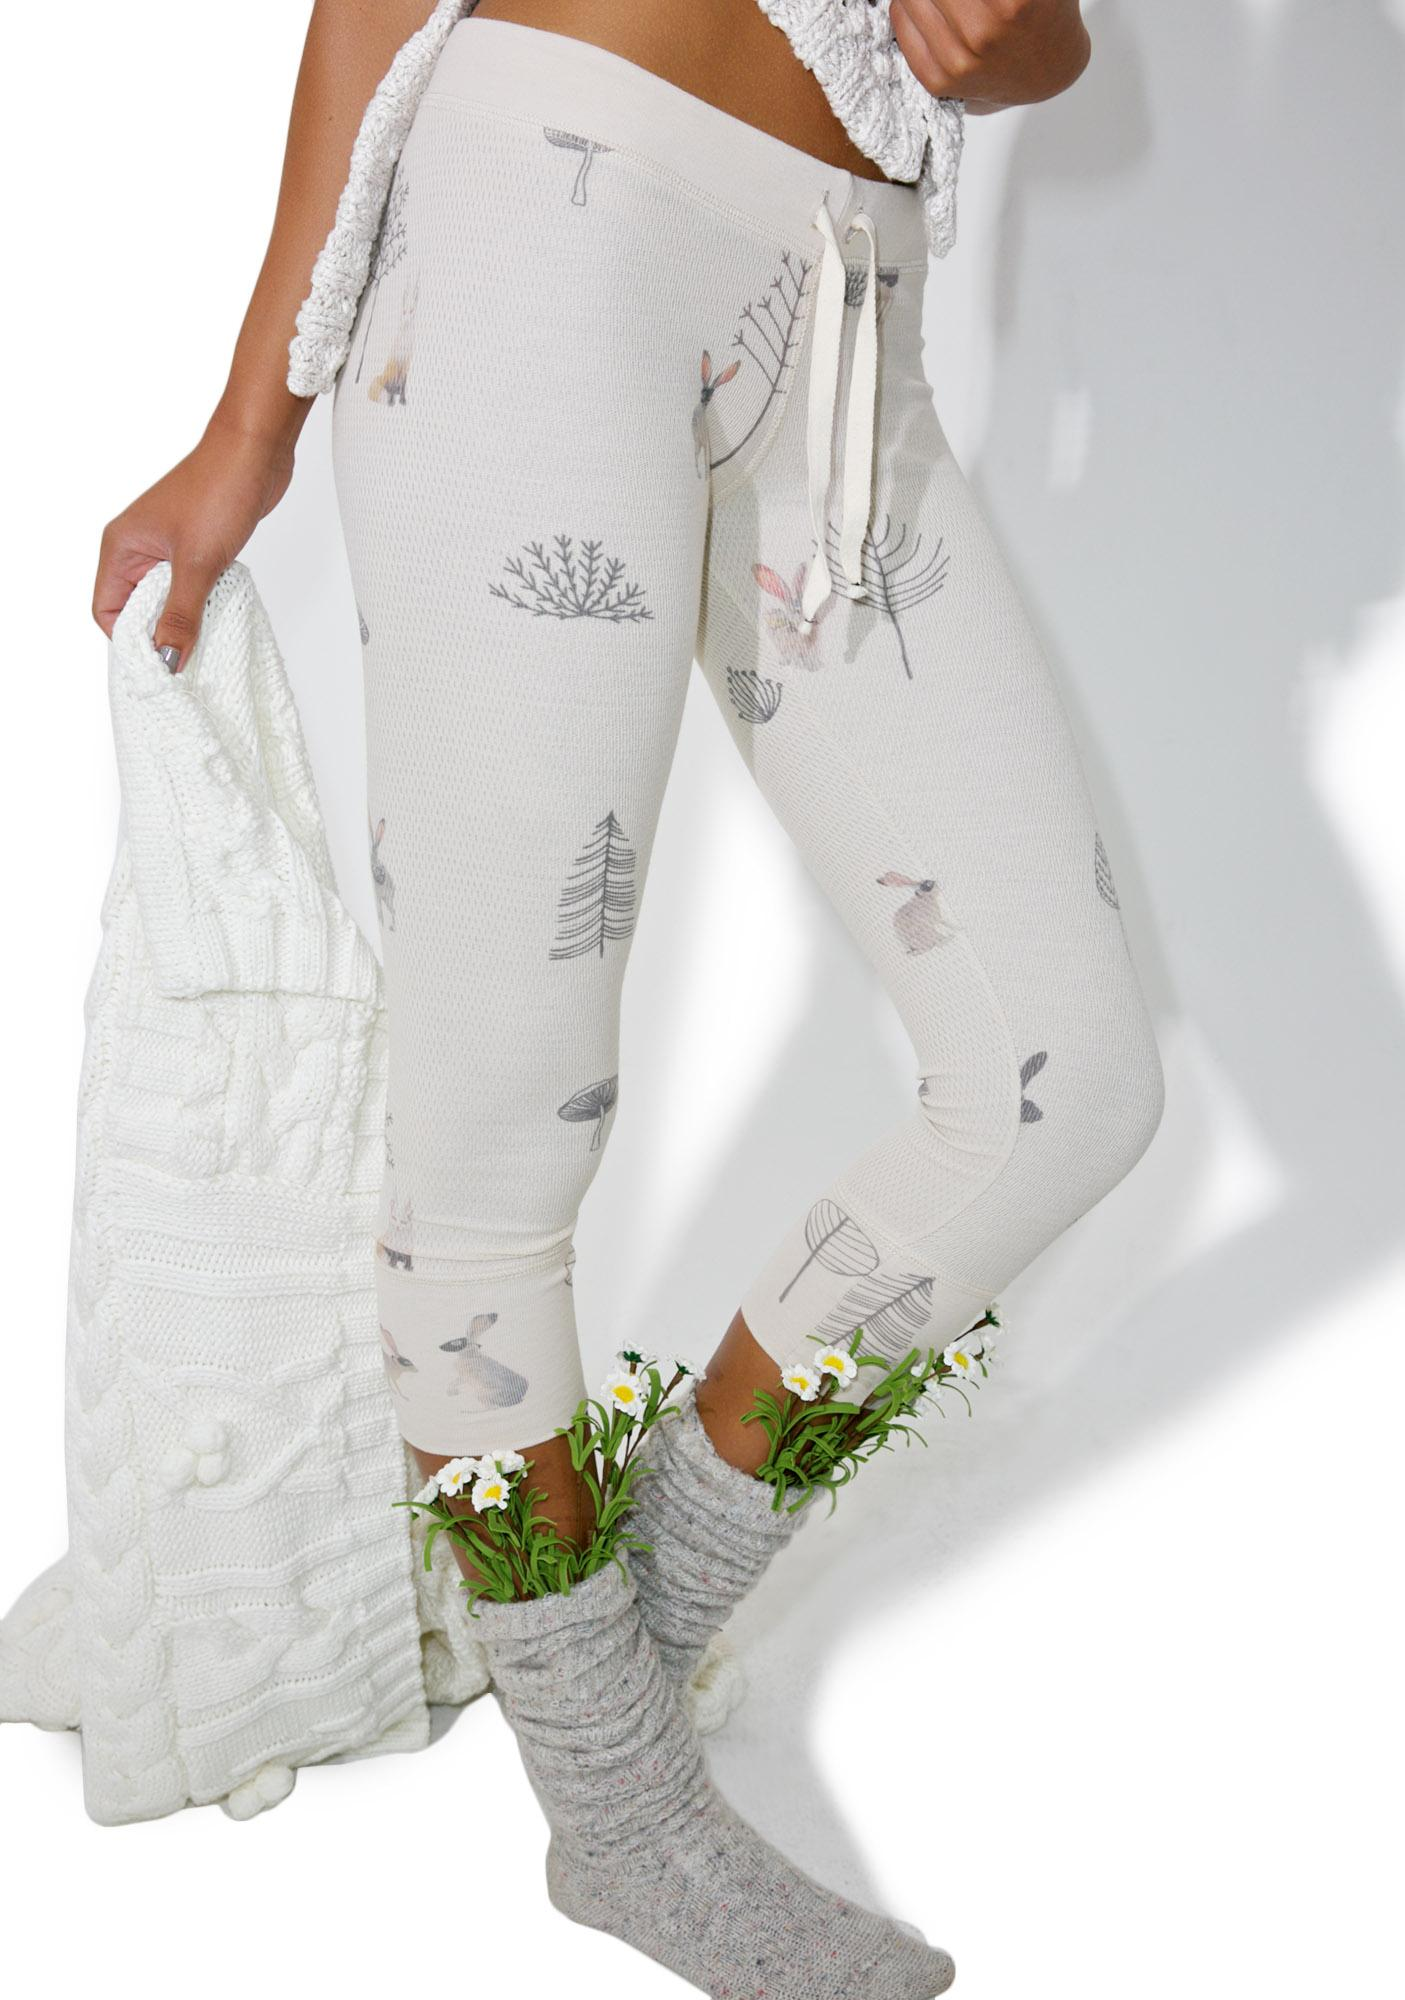 All Things Fabulous Drama Rabbit Thermal Pants